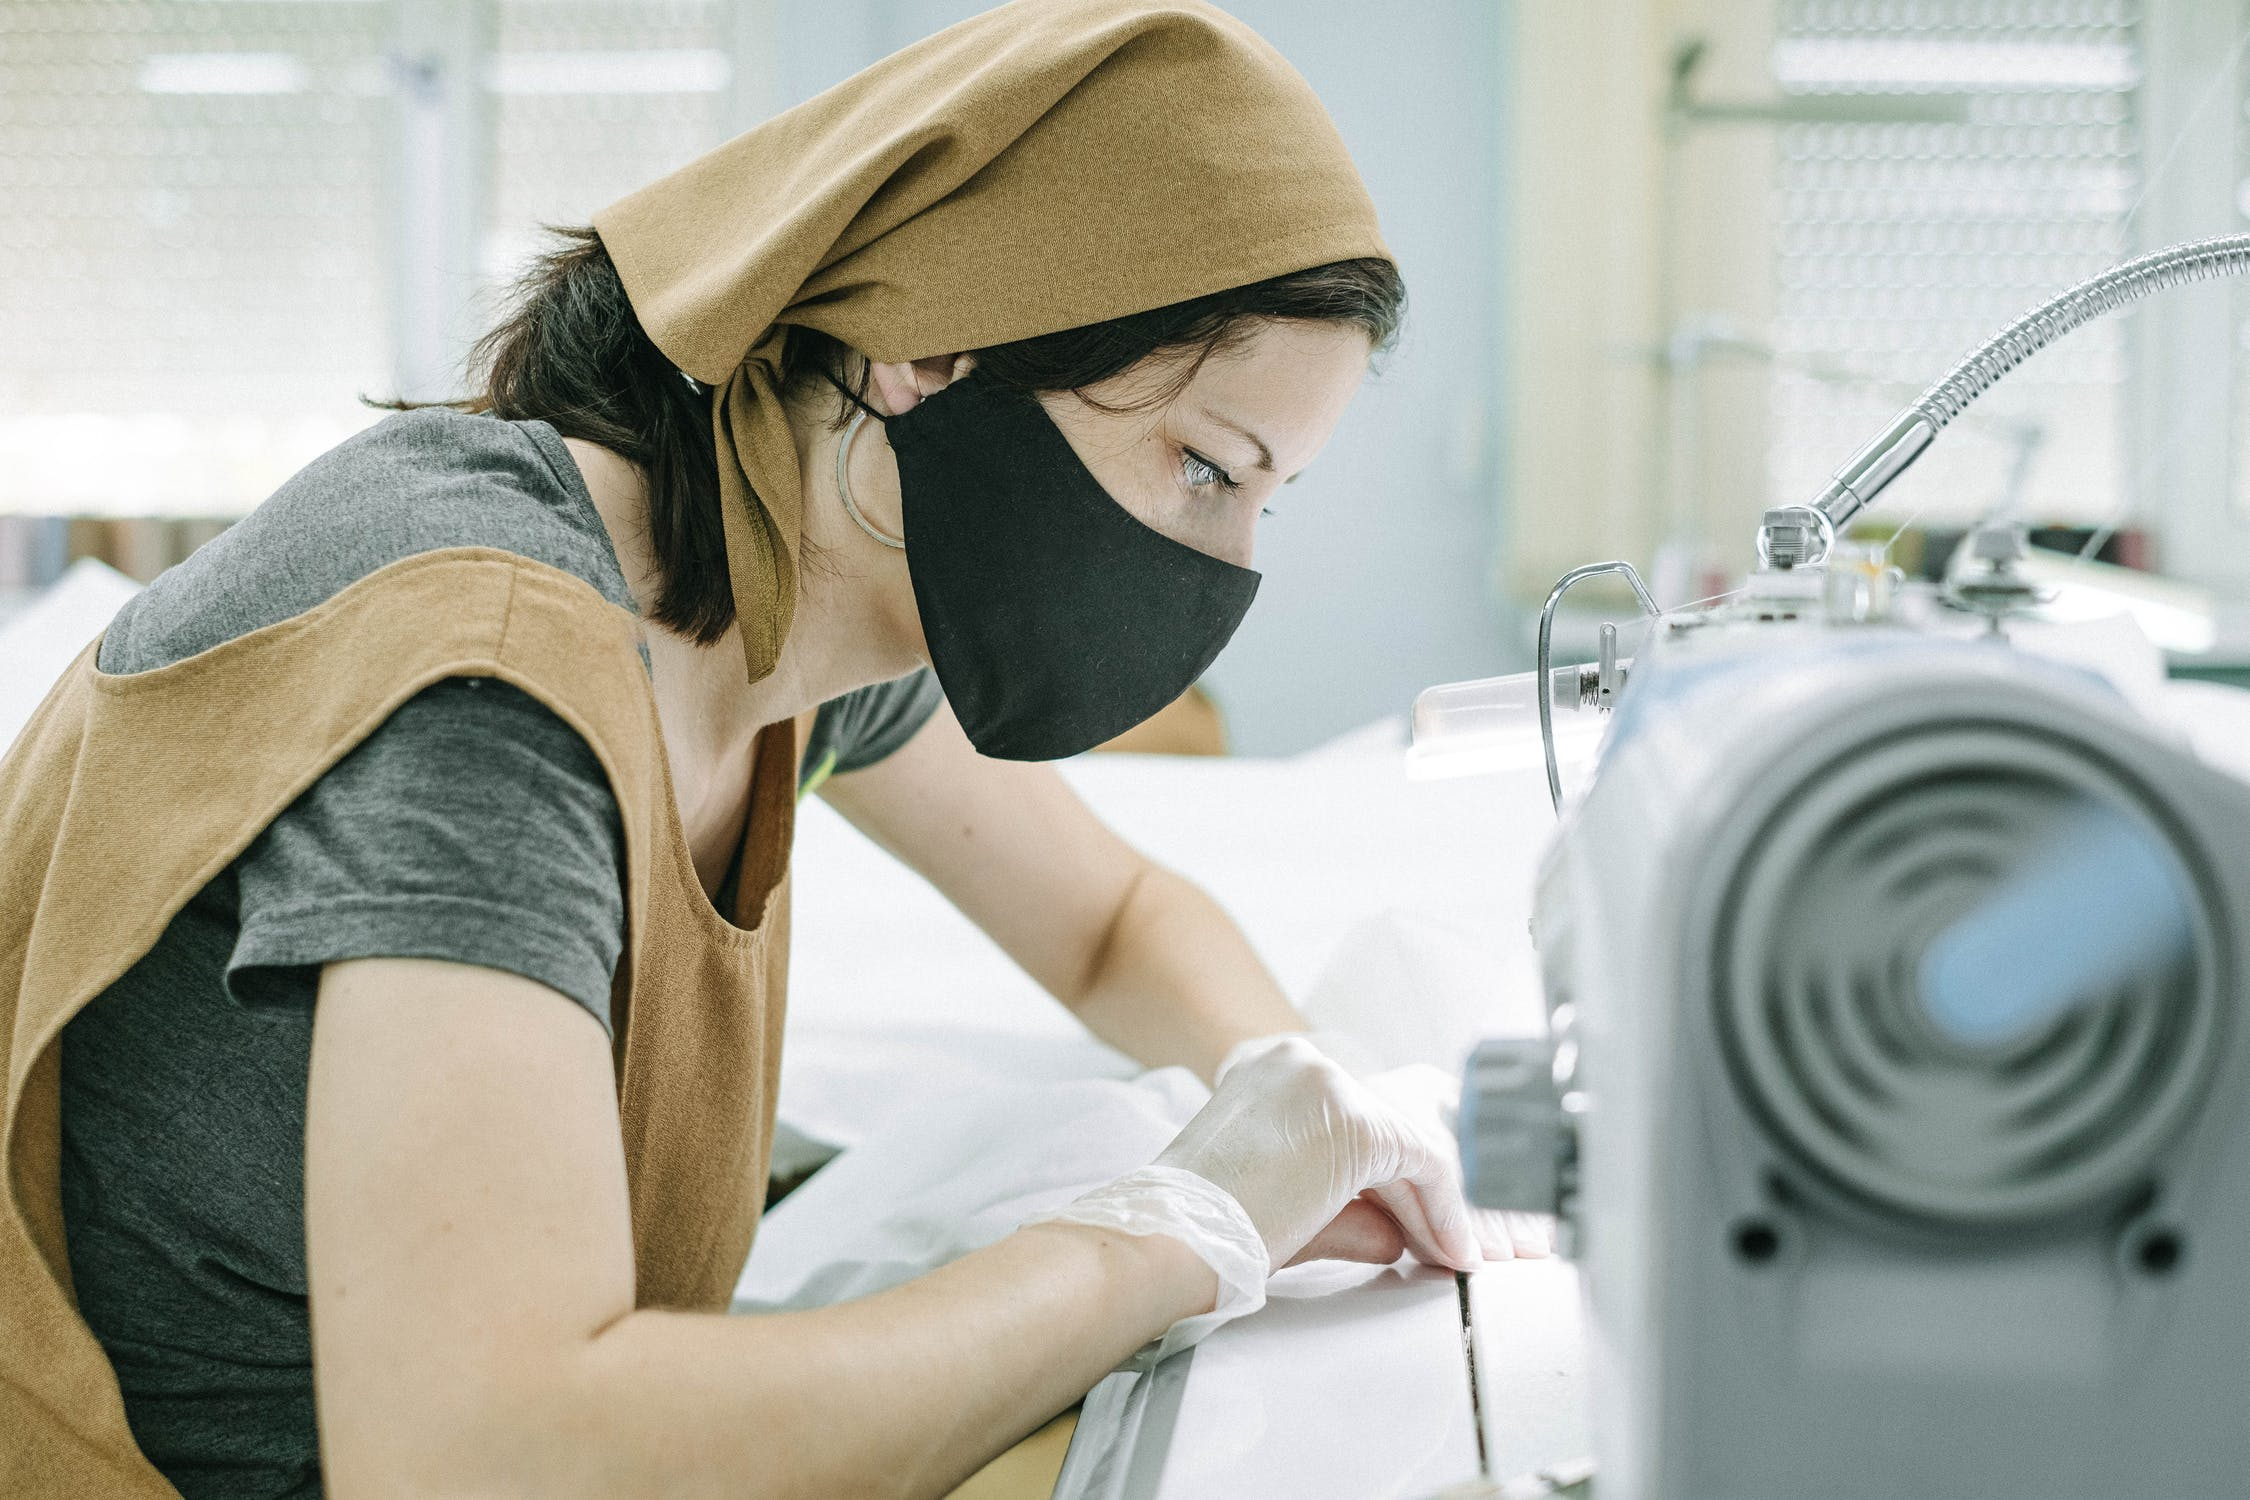 Female in business creating products